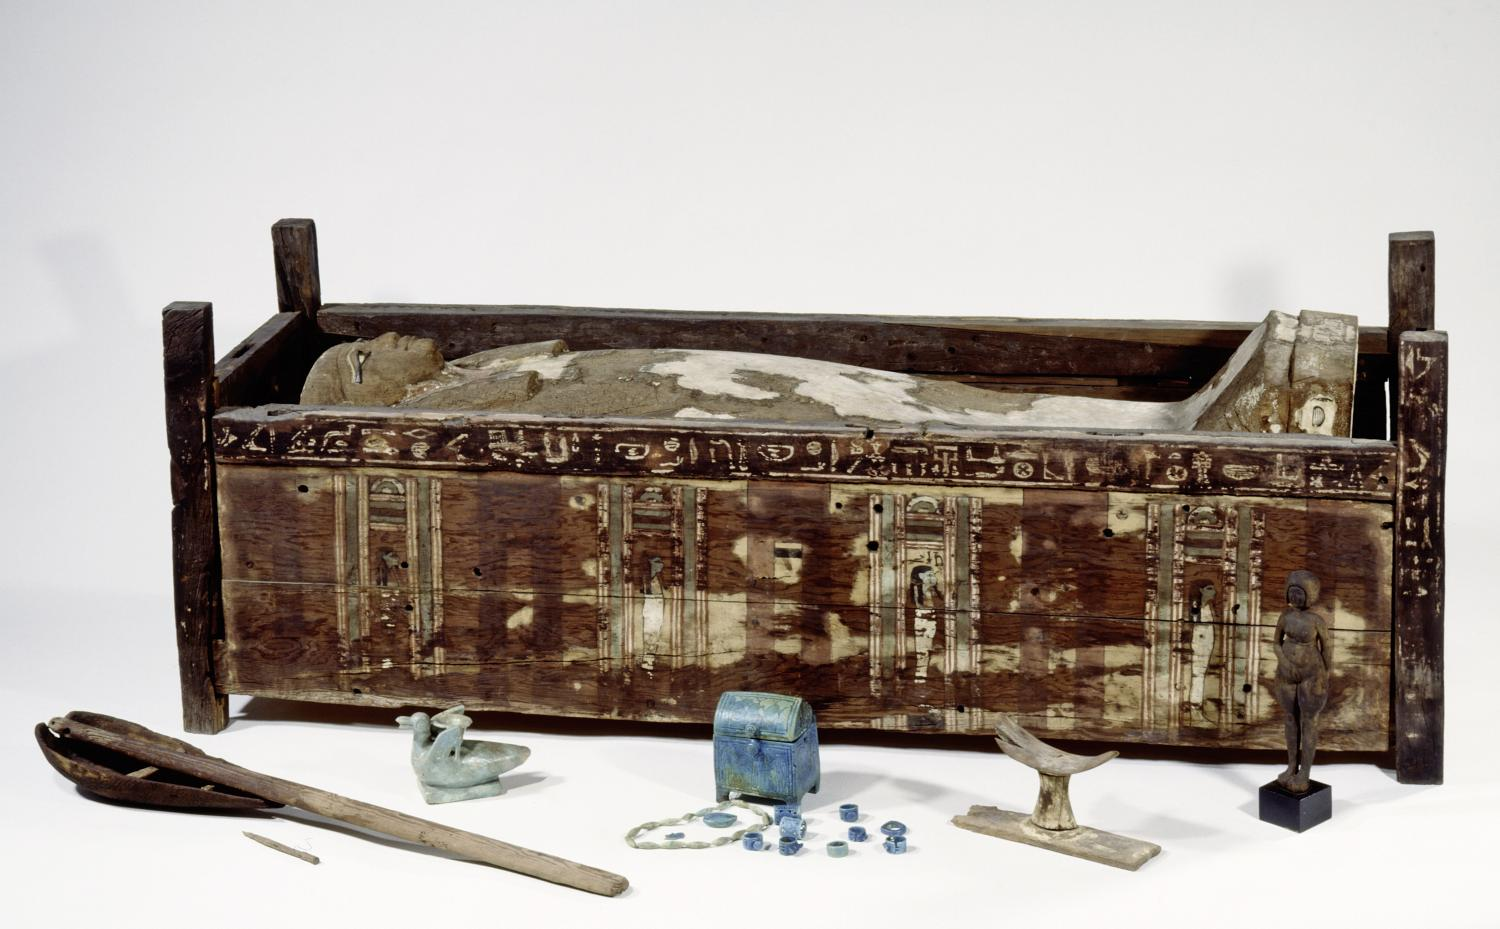 Egyptian mummies reveal their genetic secrets